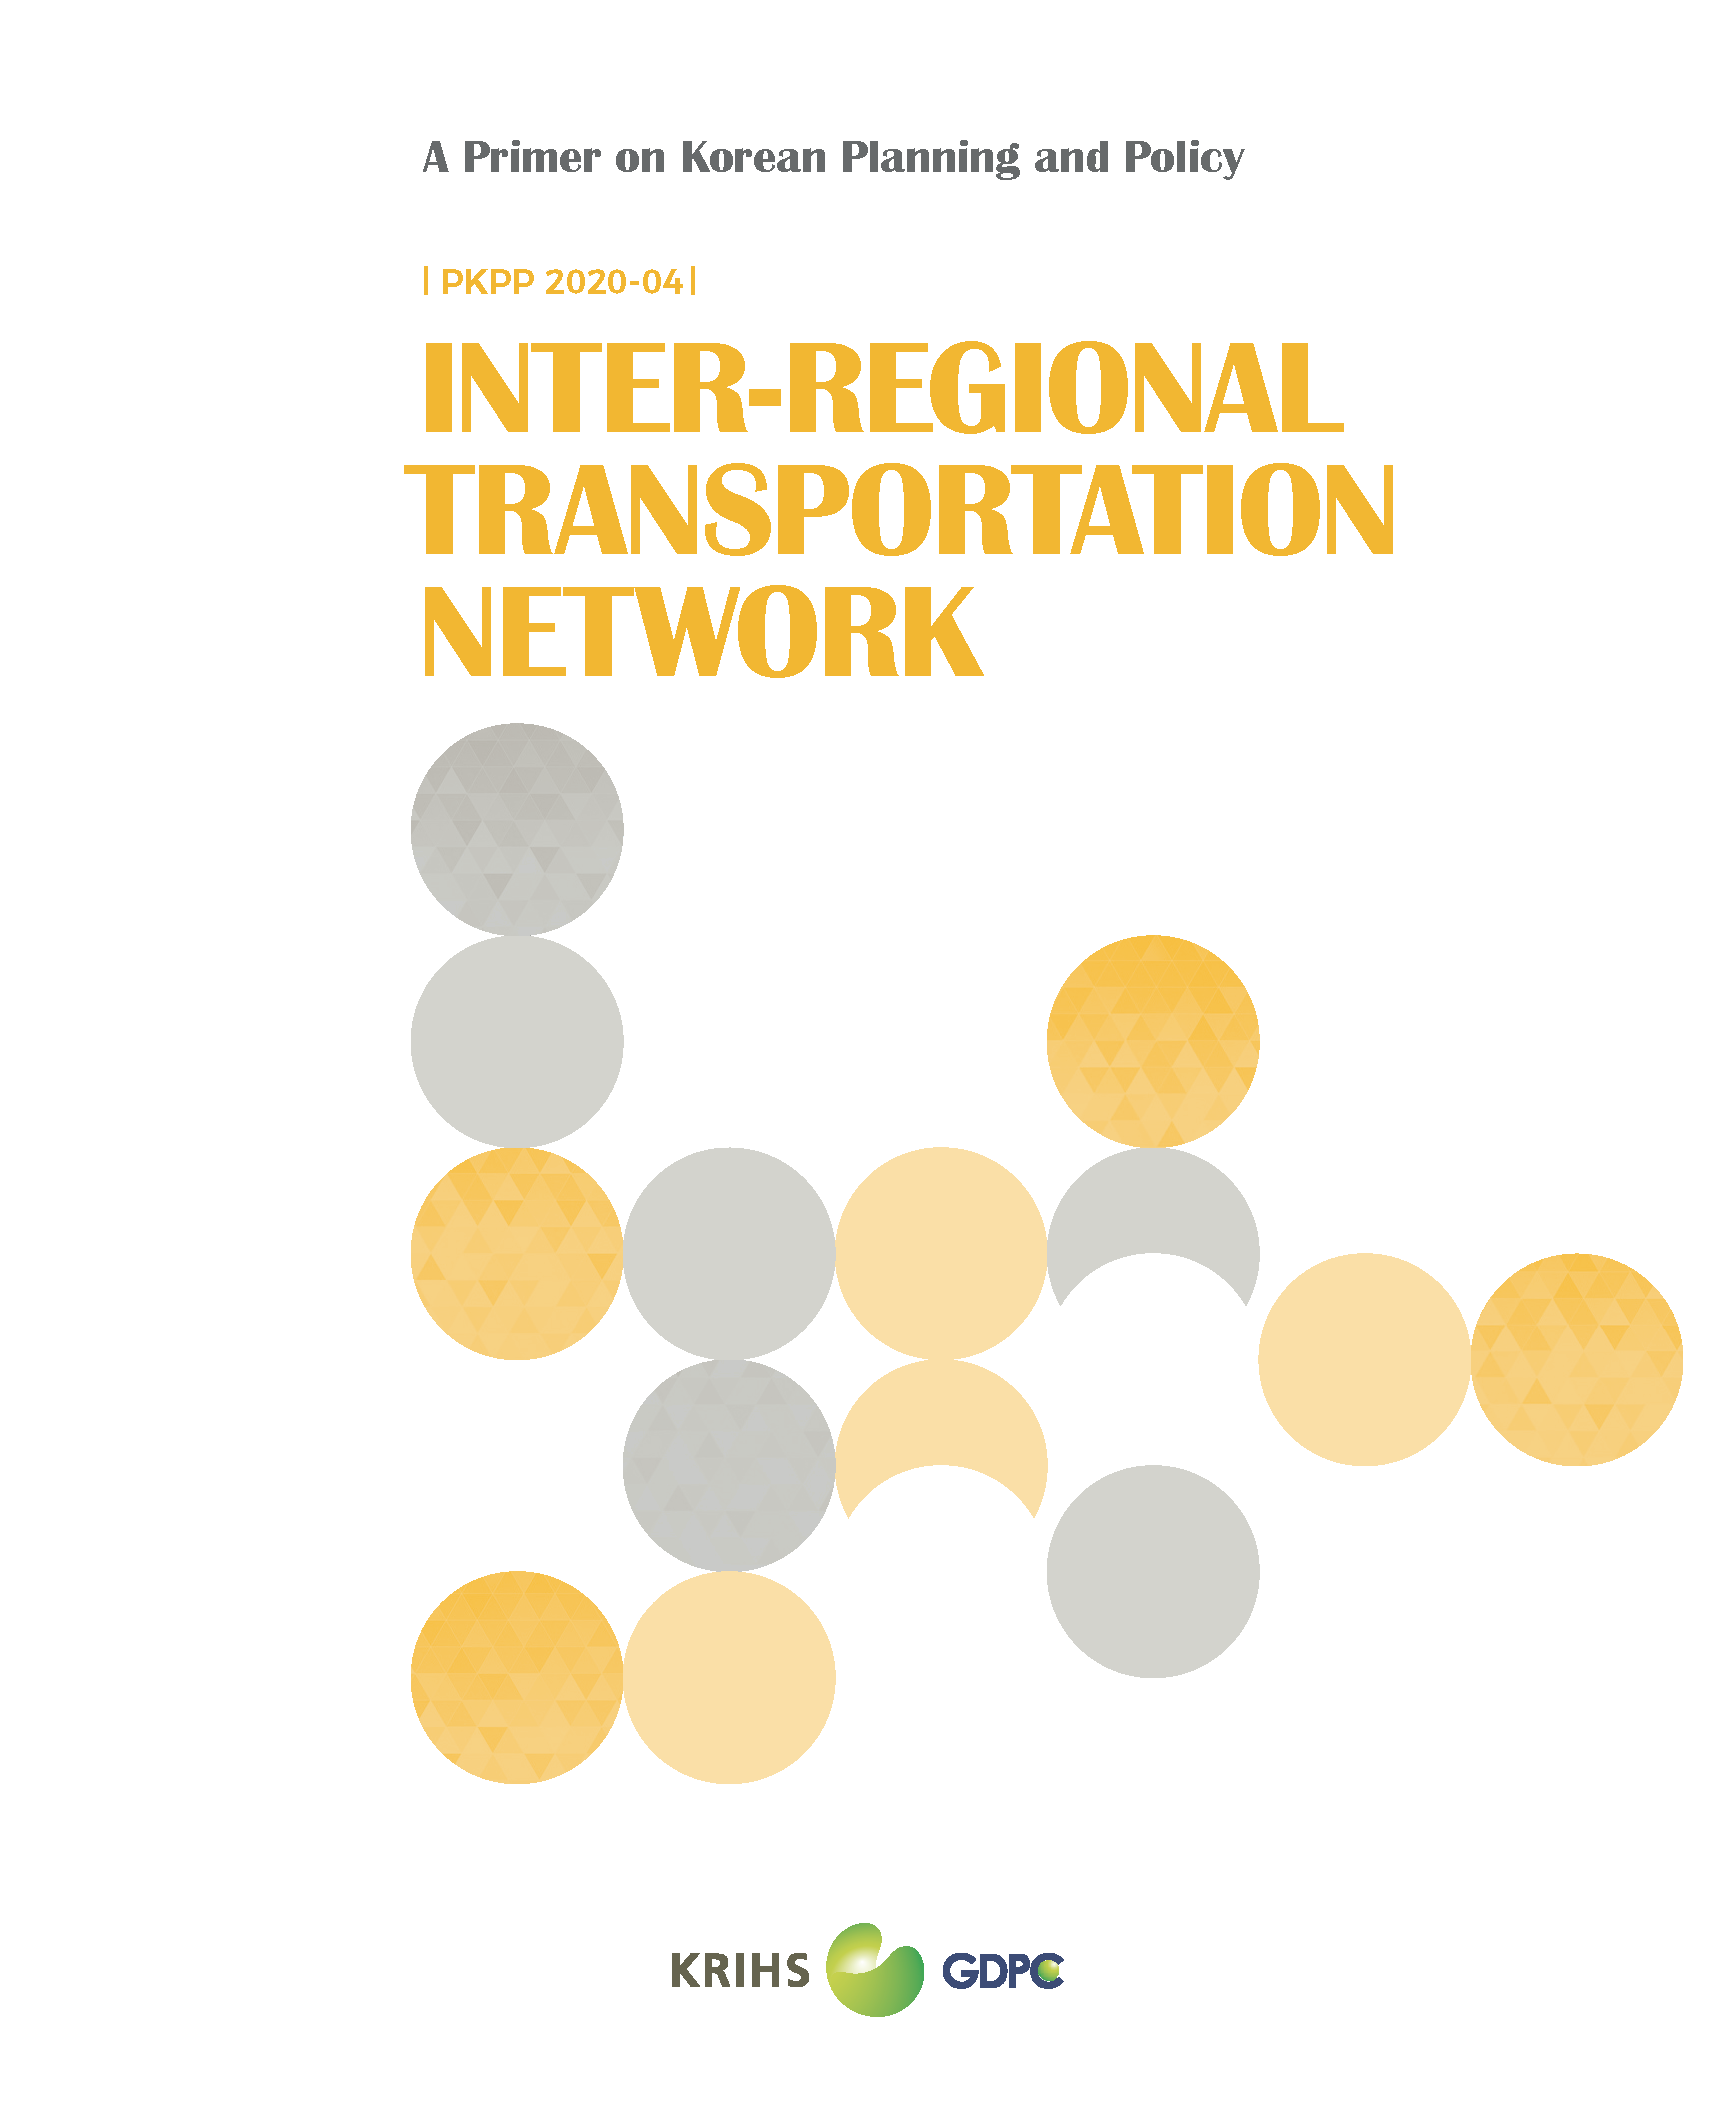 (A Primer on Korean Planning and Policy) Inter-Regional Transportation Network